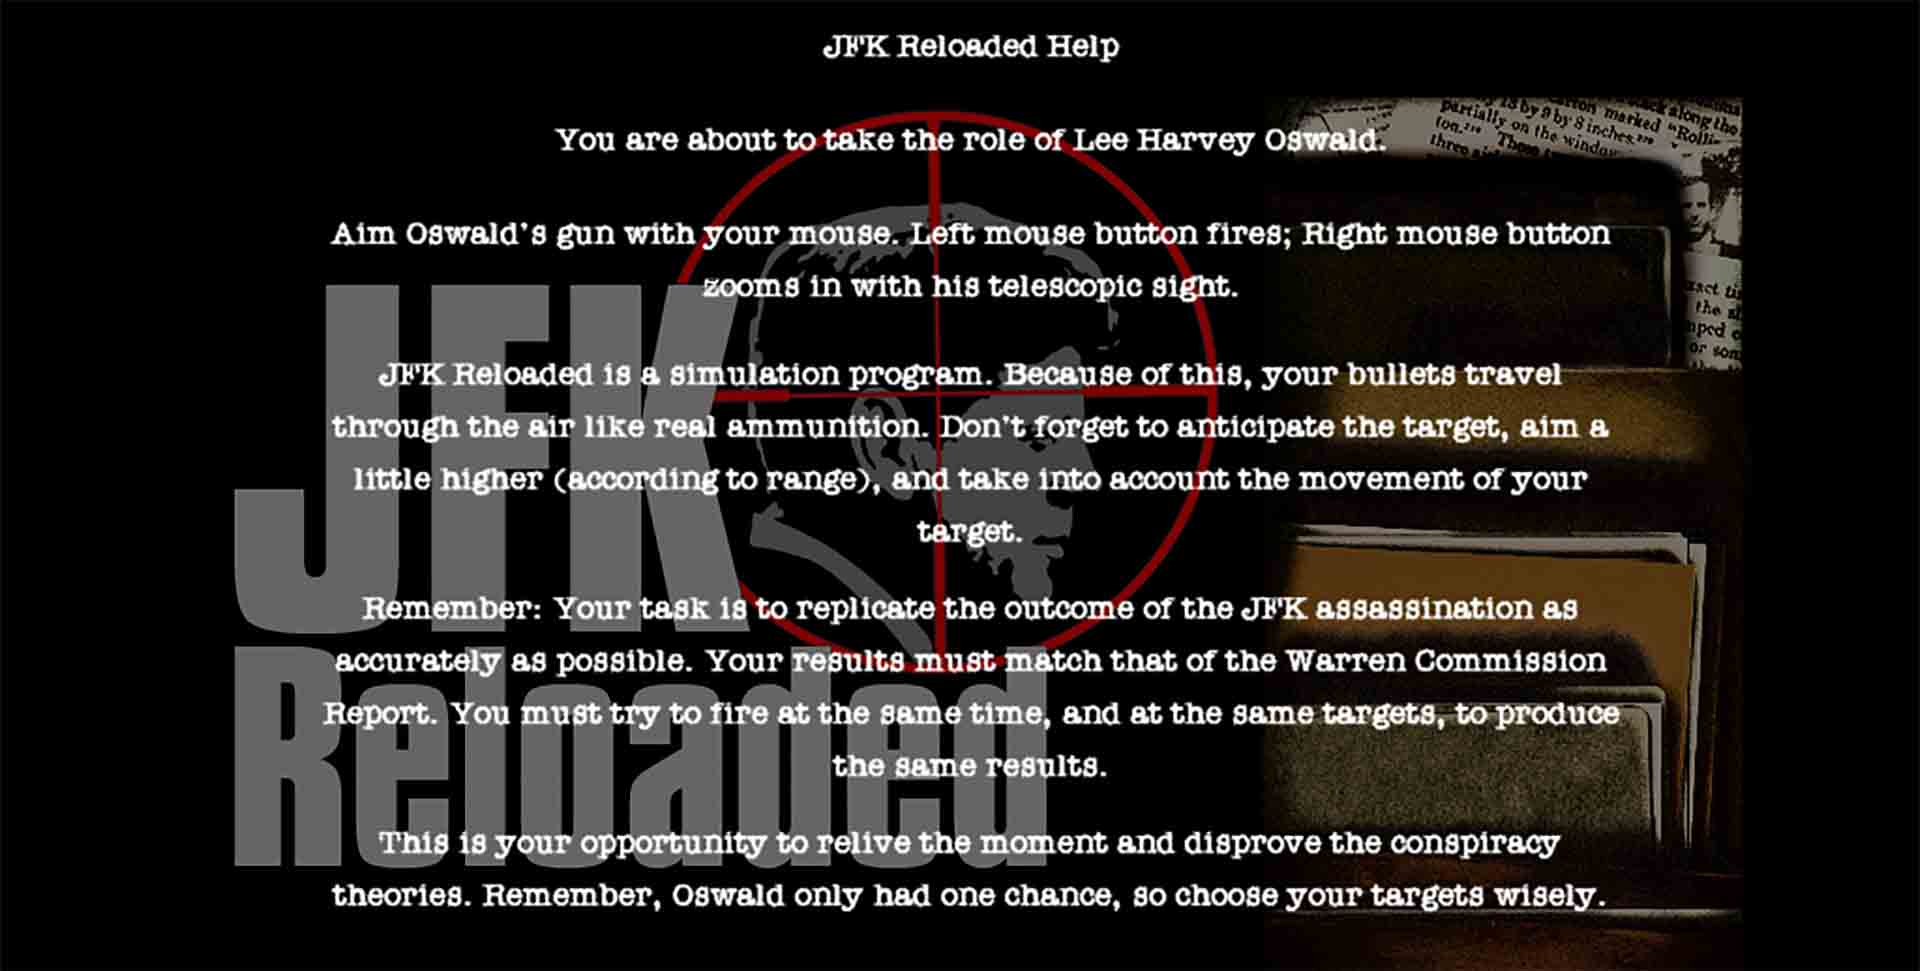 The key rules of JFK Reloaded.